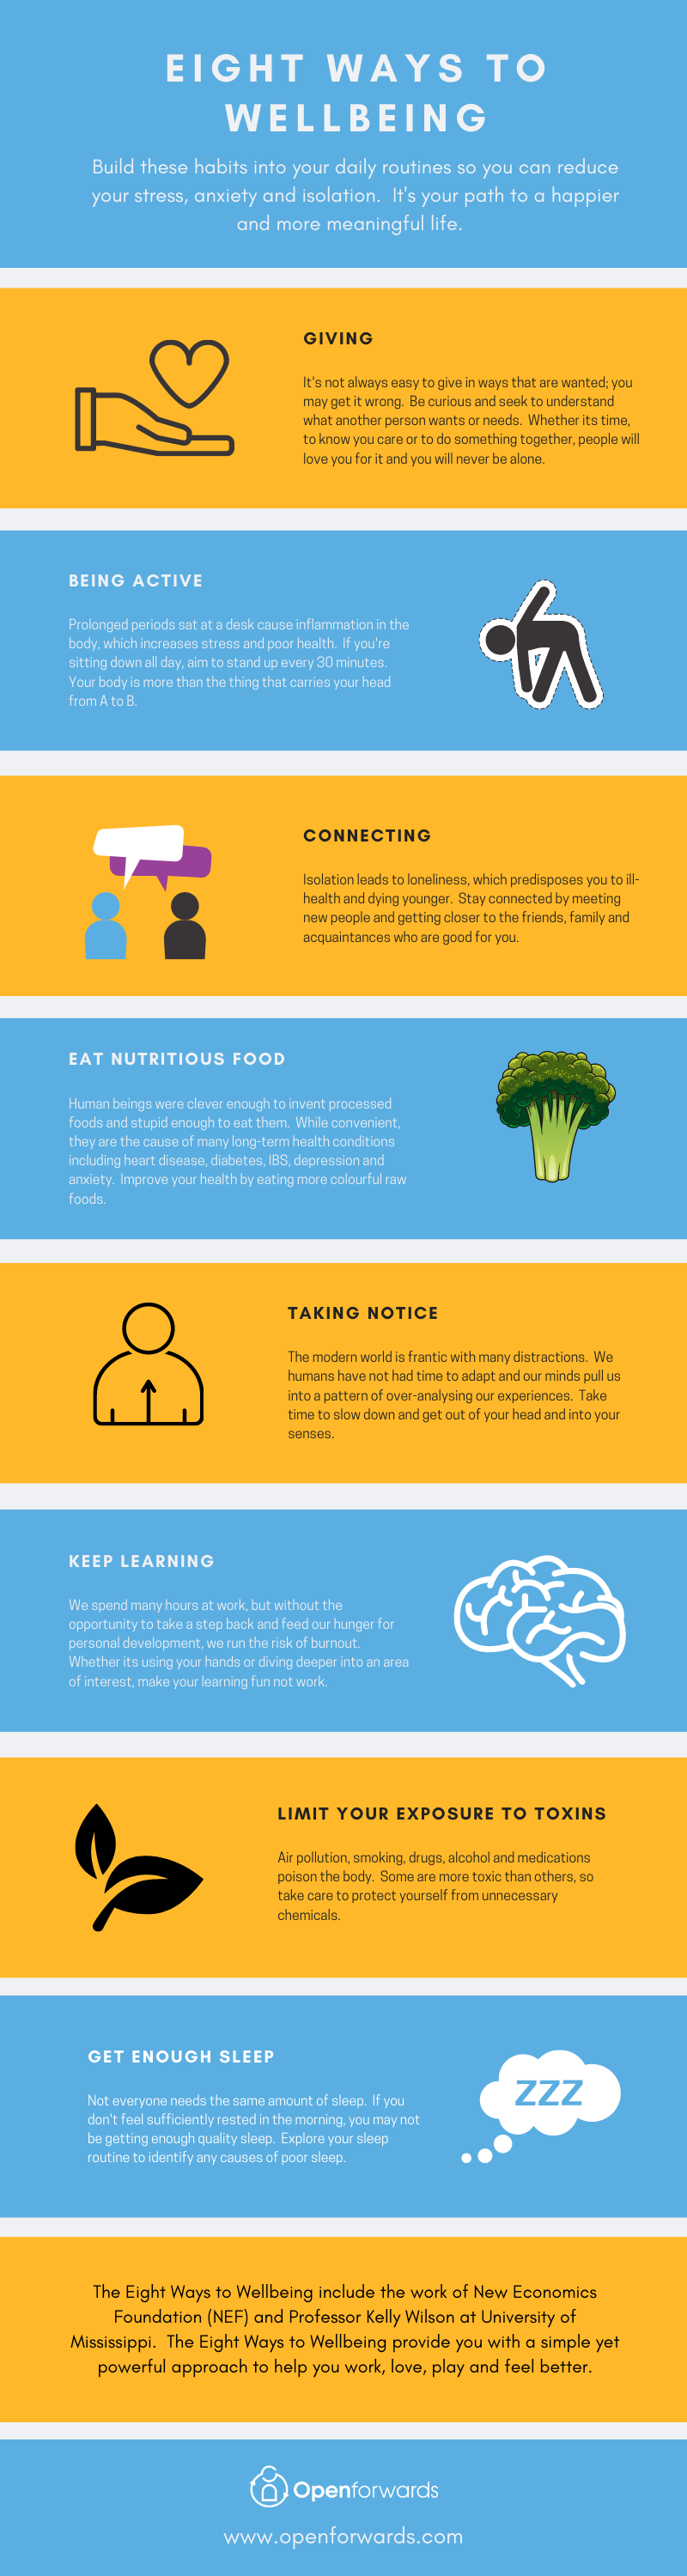 Eight Ways to Wellbeing